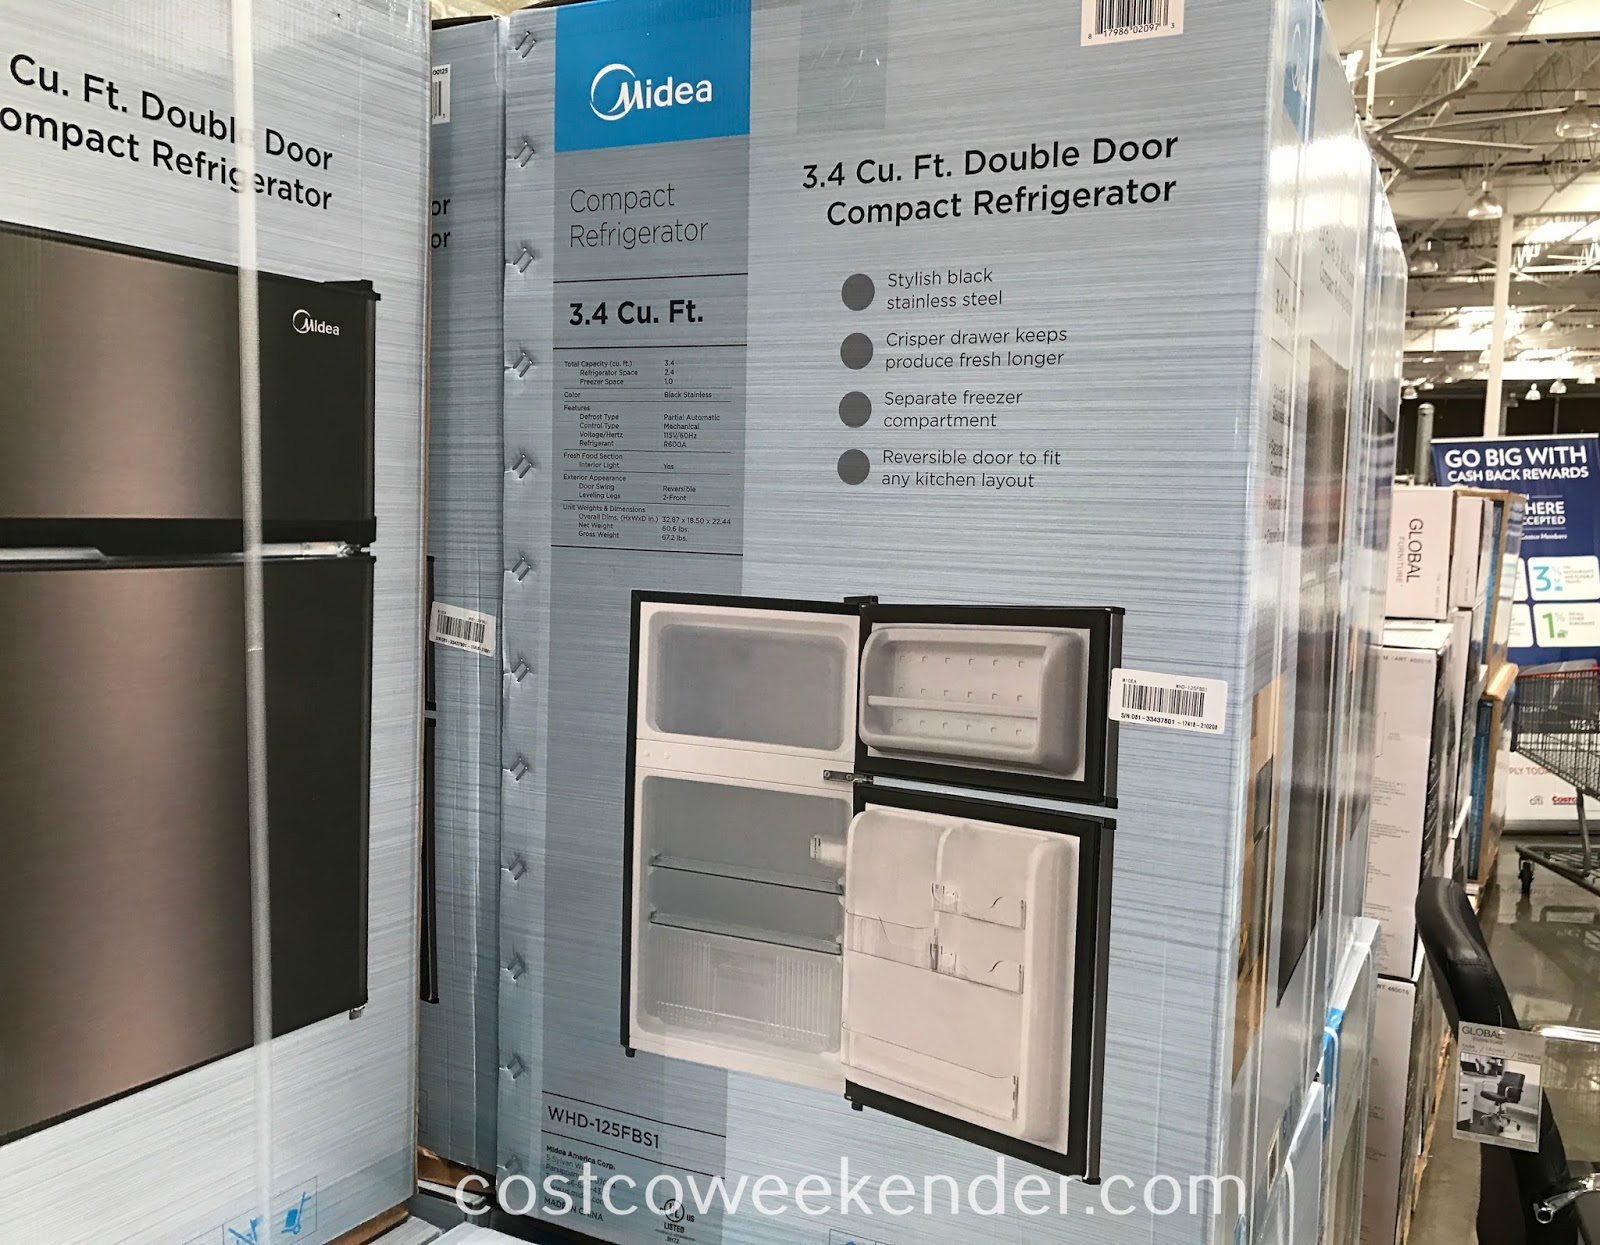 Costco 2000125 - Midea WHD-125FBS1 3.4 cu ft Double Door Compact Refrigerator: great for dorms rooms or garages